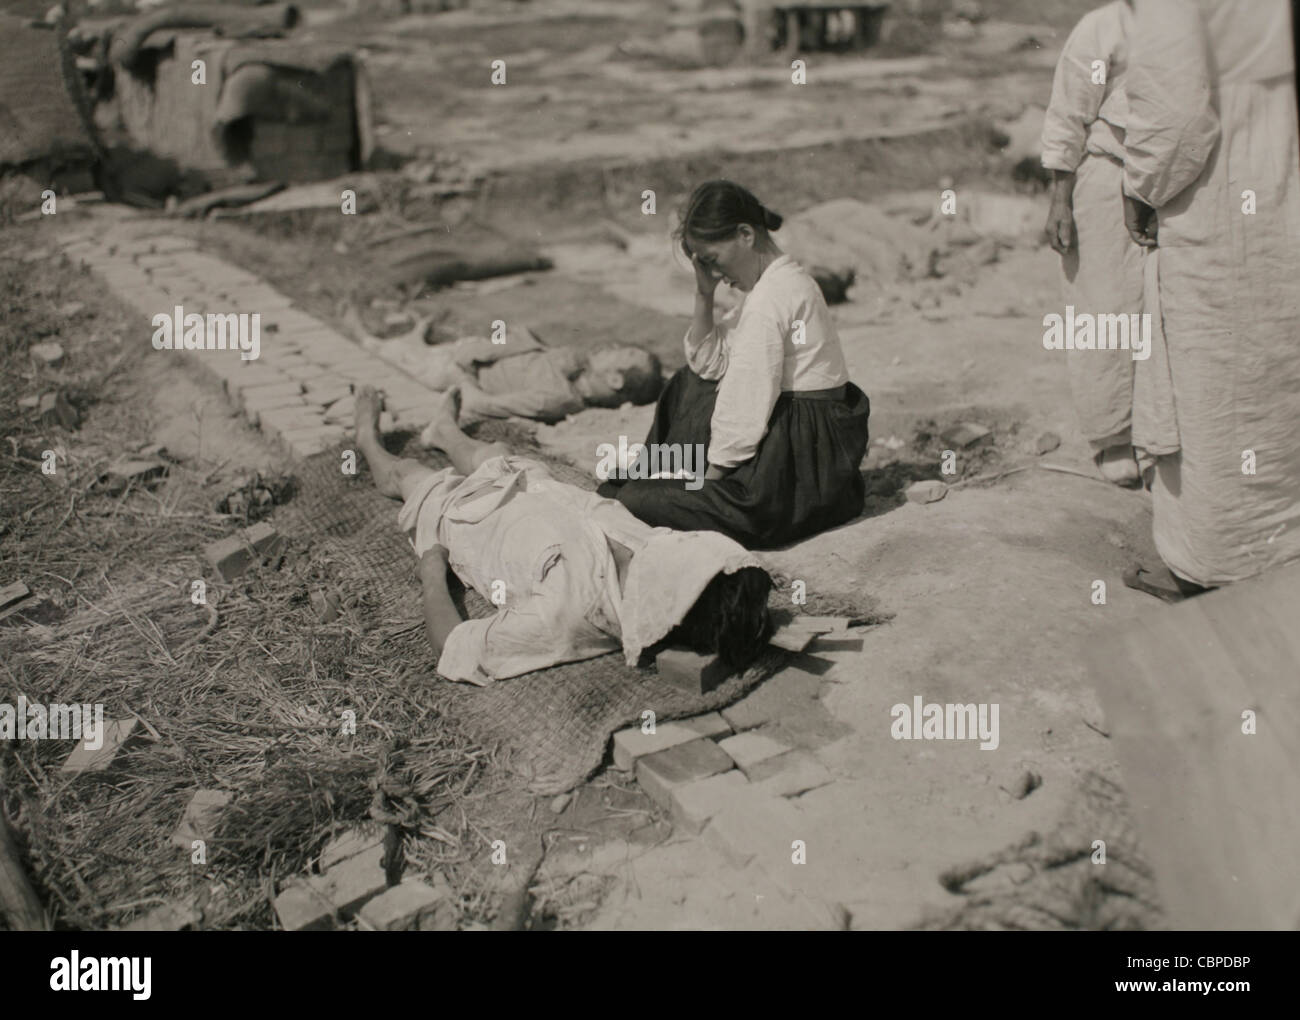 Korea, 29 September 1950: Korean woman weeps beside the body of her husband who was slain by the North Korean troops - Stock Image